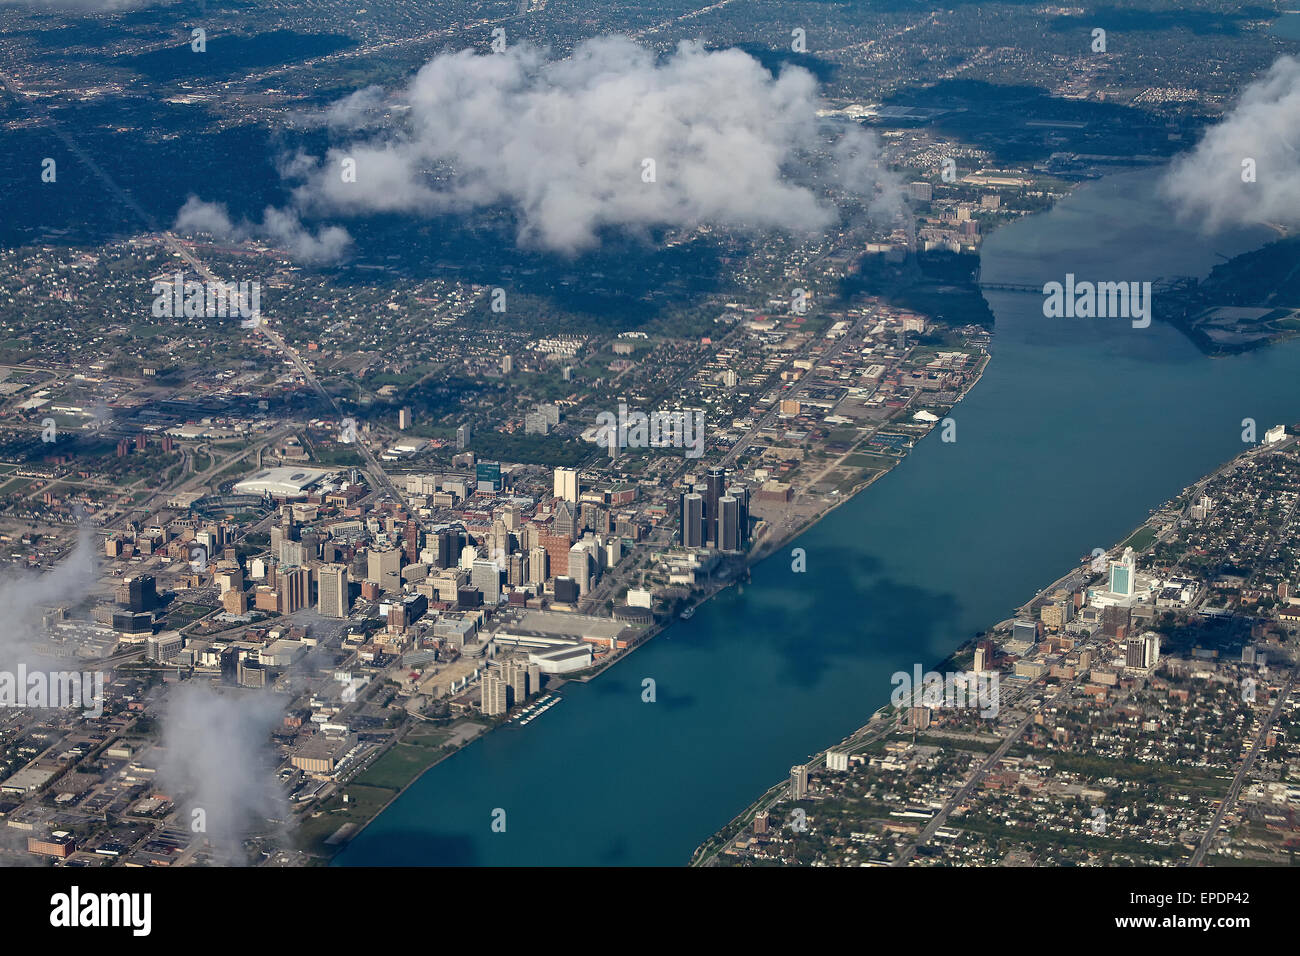 Aerial view Detroit, Michigan with the Detroit River. - Stock Image